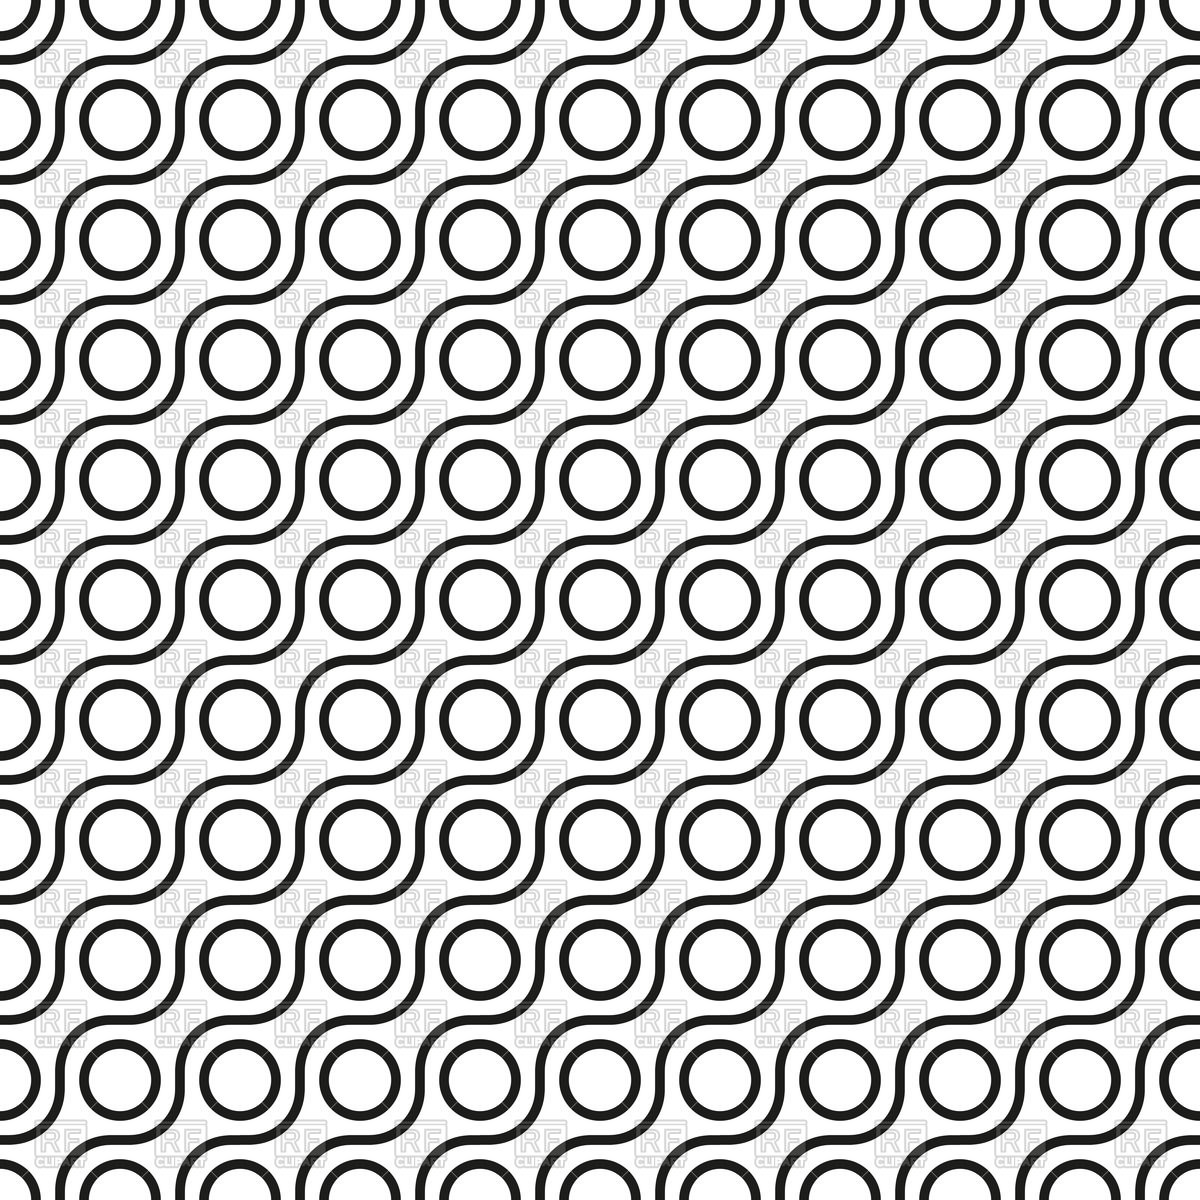 1200x1200 White And Black Seamless Wavy Pattern With Geometric Ornament